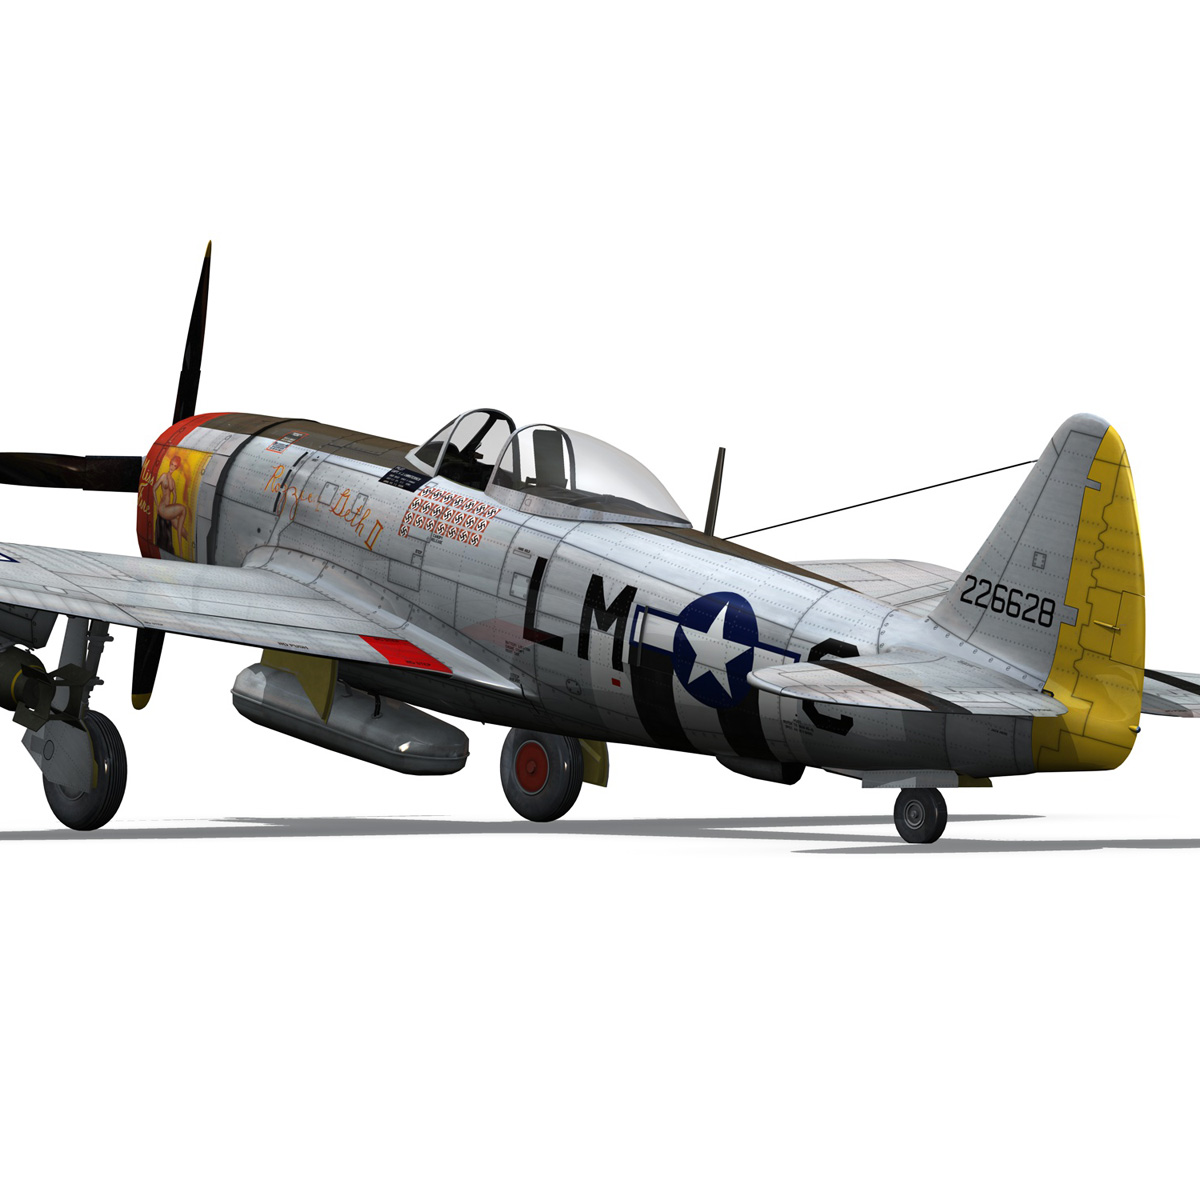 Republic P-47D Thunderbolt - Rozzie Geth II 3d model  279779